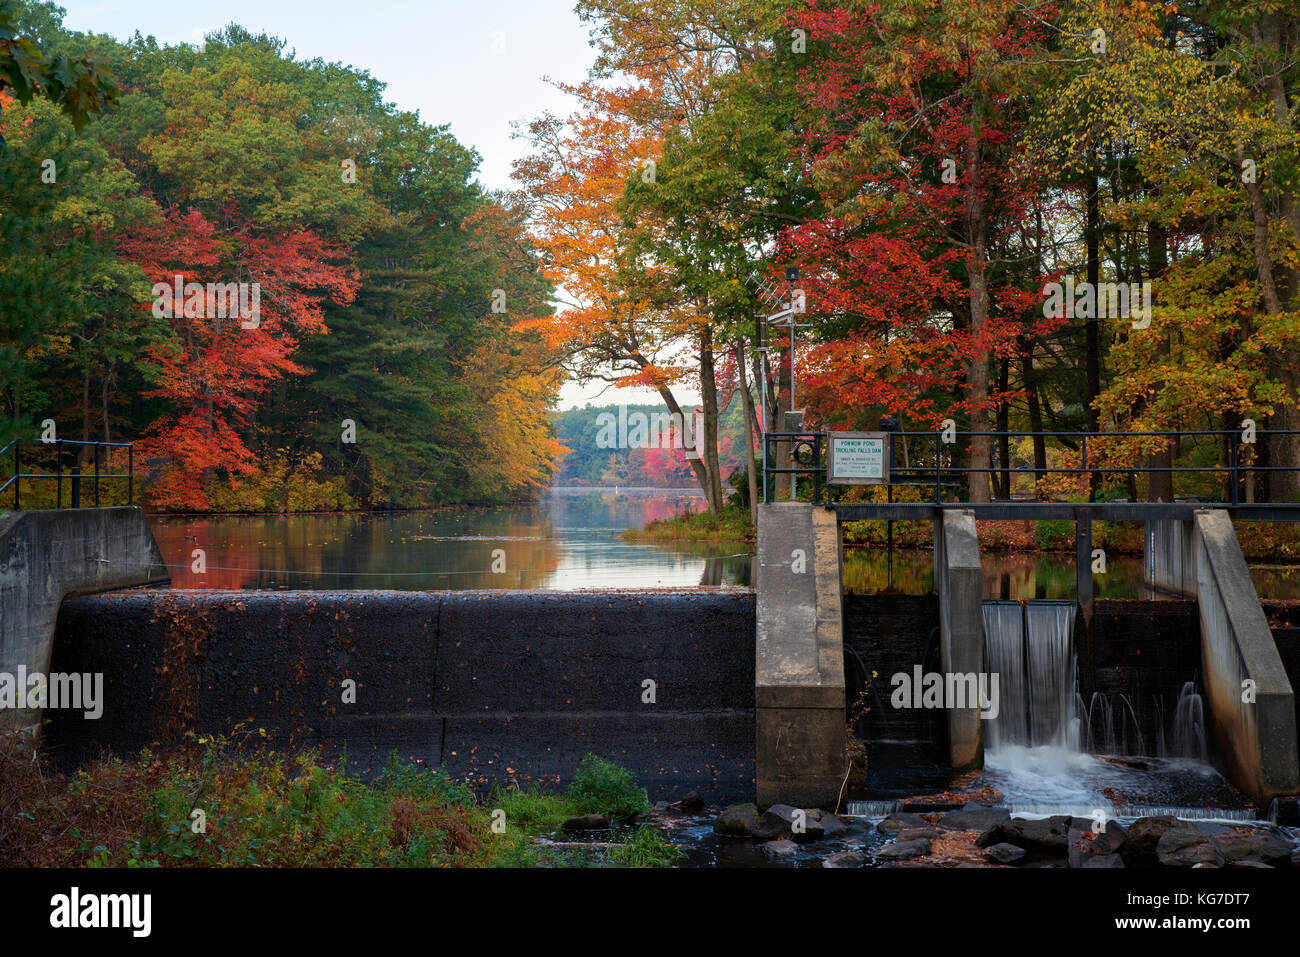 Trickling Falls Dam and Powwow Pond in autumn with bright fall foliage, East Kingston, New Hampshire, USA - Stock Image